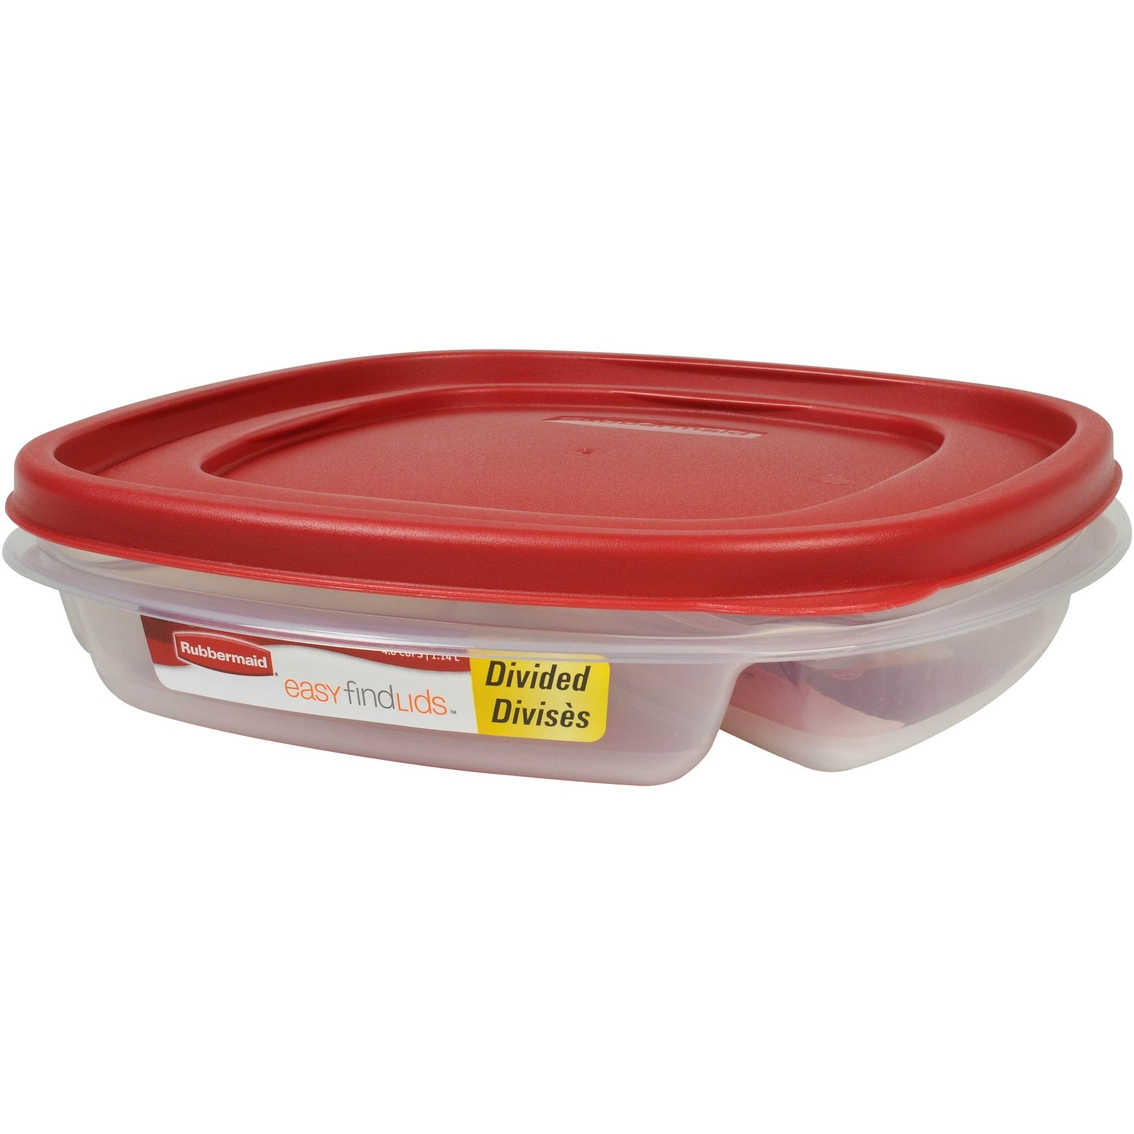 Rubbermaid 48 Cup Square Divided Food Storage Container Food